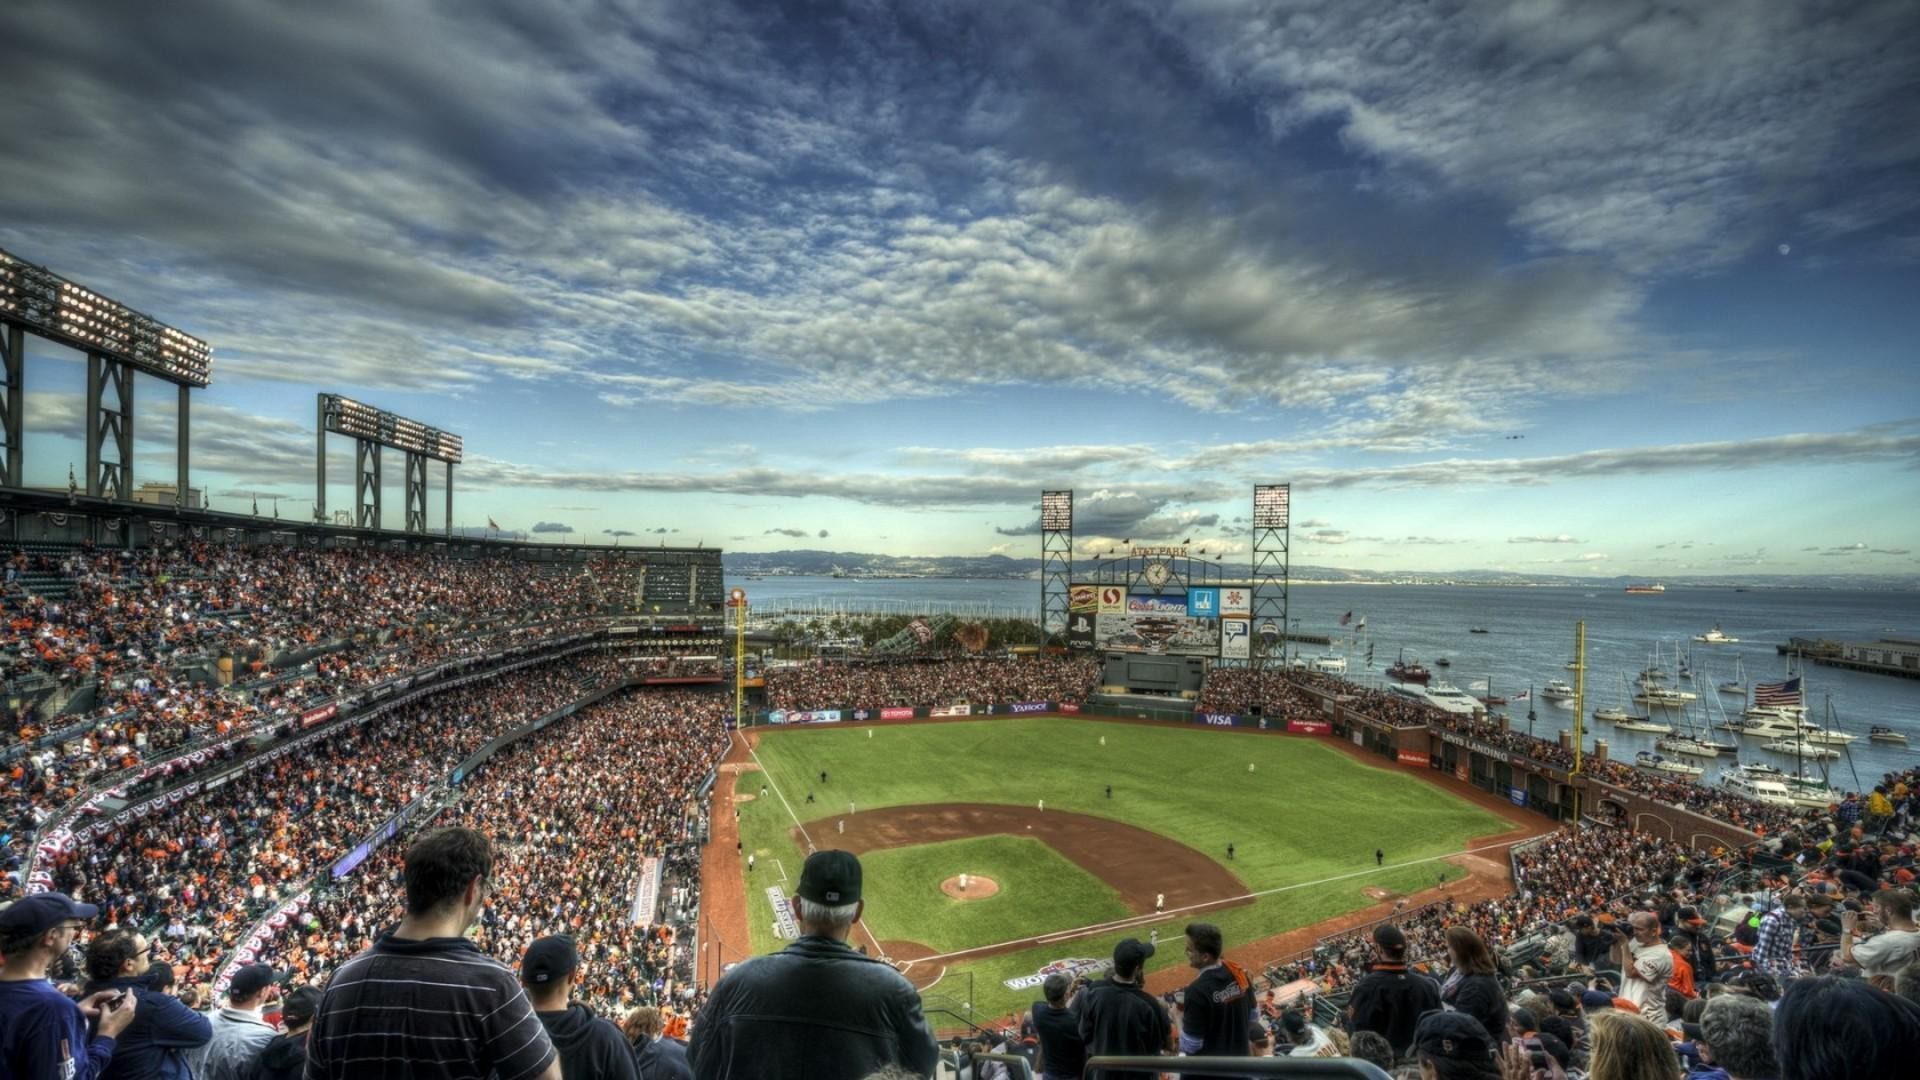 Download Free San Francisco Giants Wallpapers | Wallpapers .